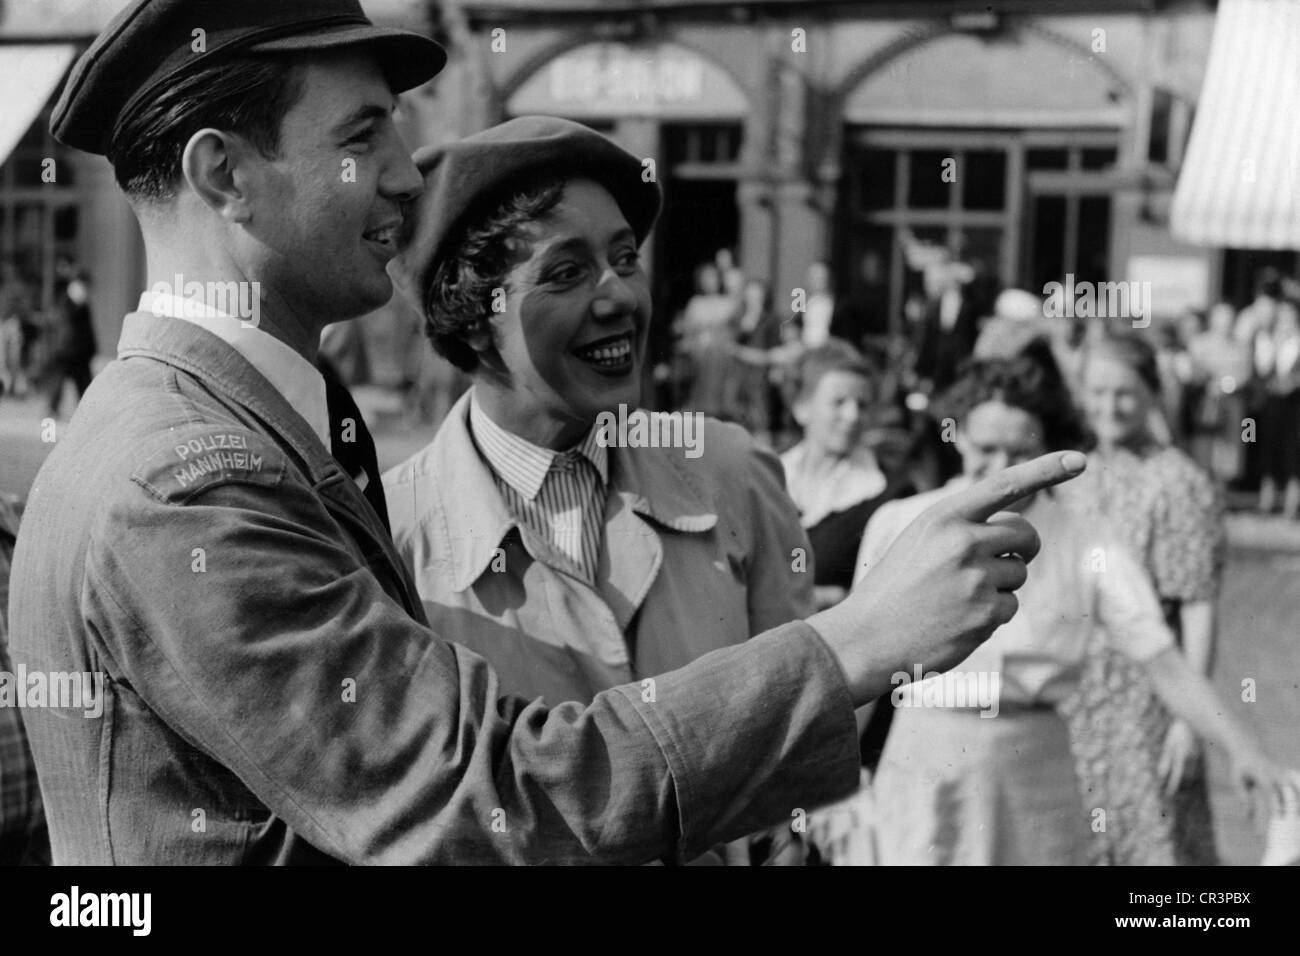 Herking, Ursula 28.1.1912 - 17.11.1974, German actress, half length in the movie 'Wer fuhr den grauen Ford ?', - Stock Image